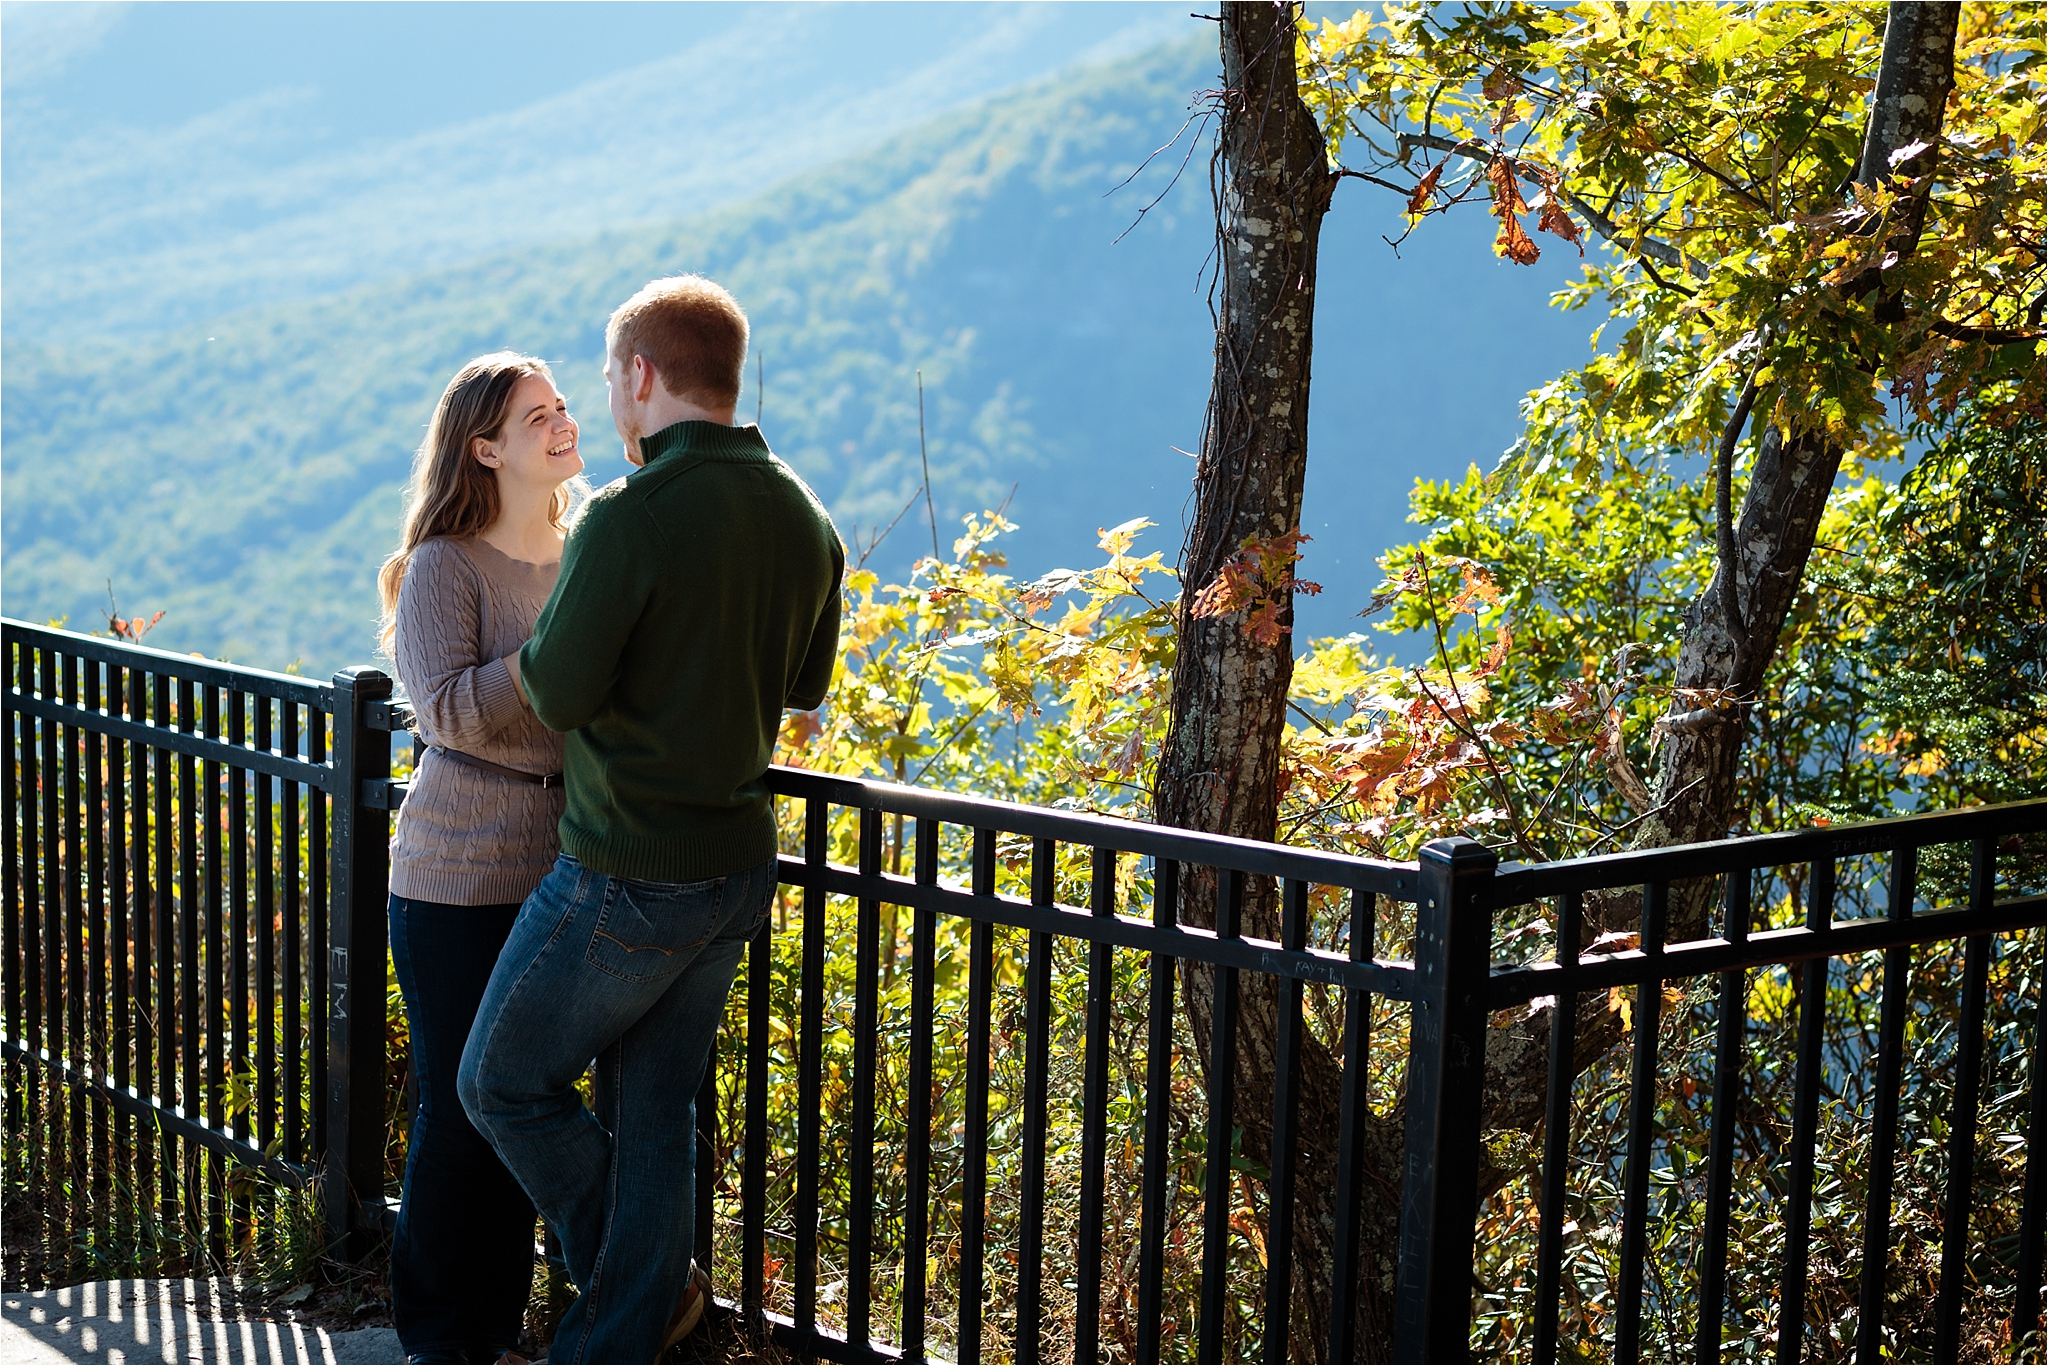 caesars-head-engagement-shoot-2_blog.jpg